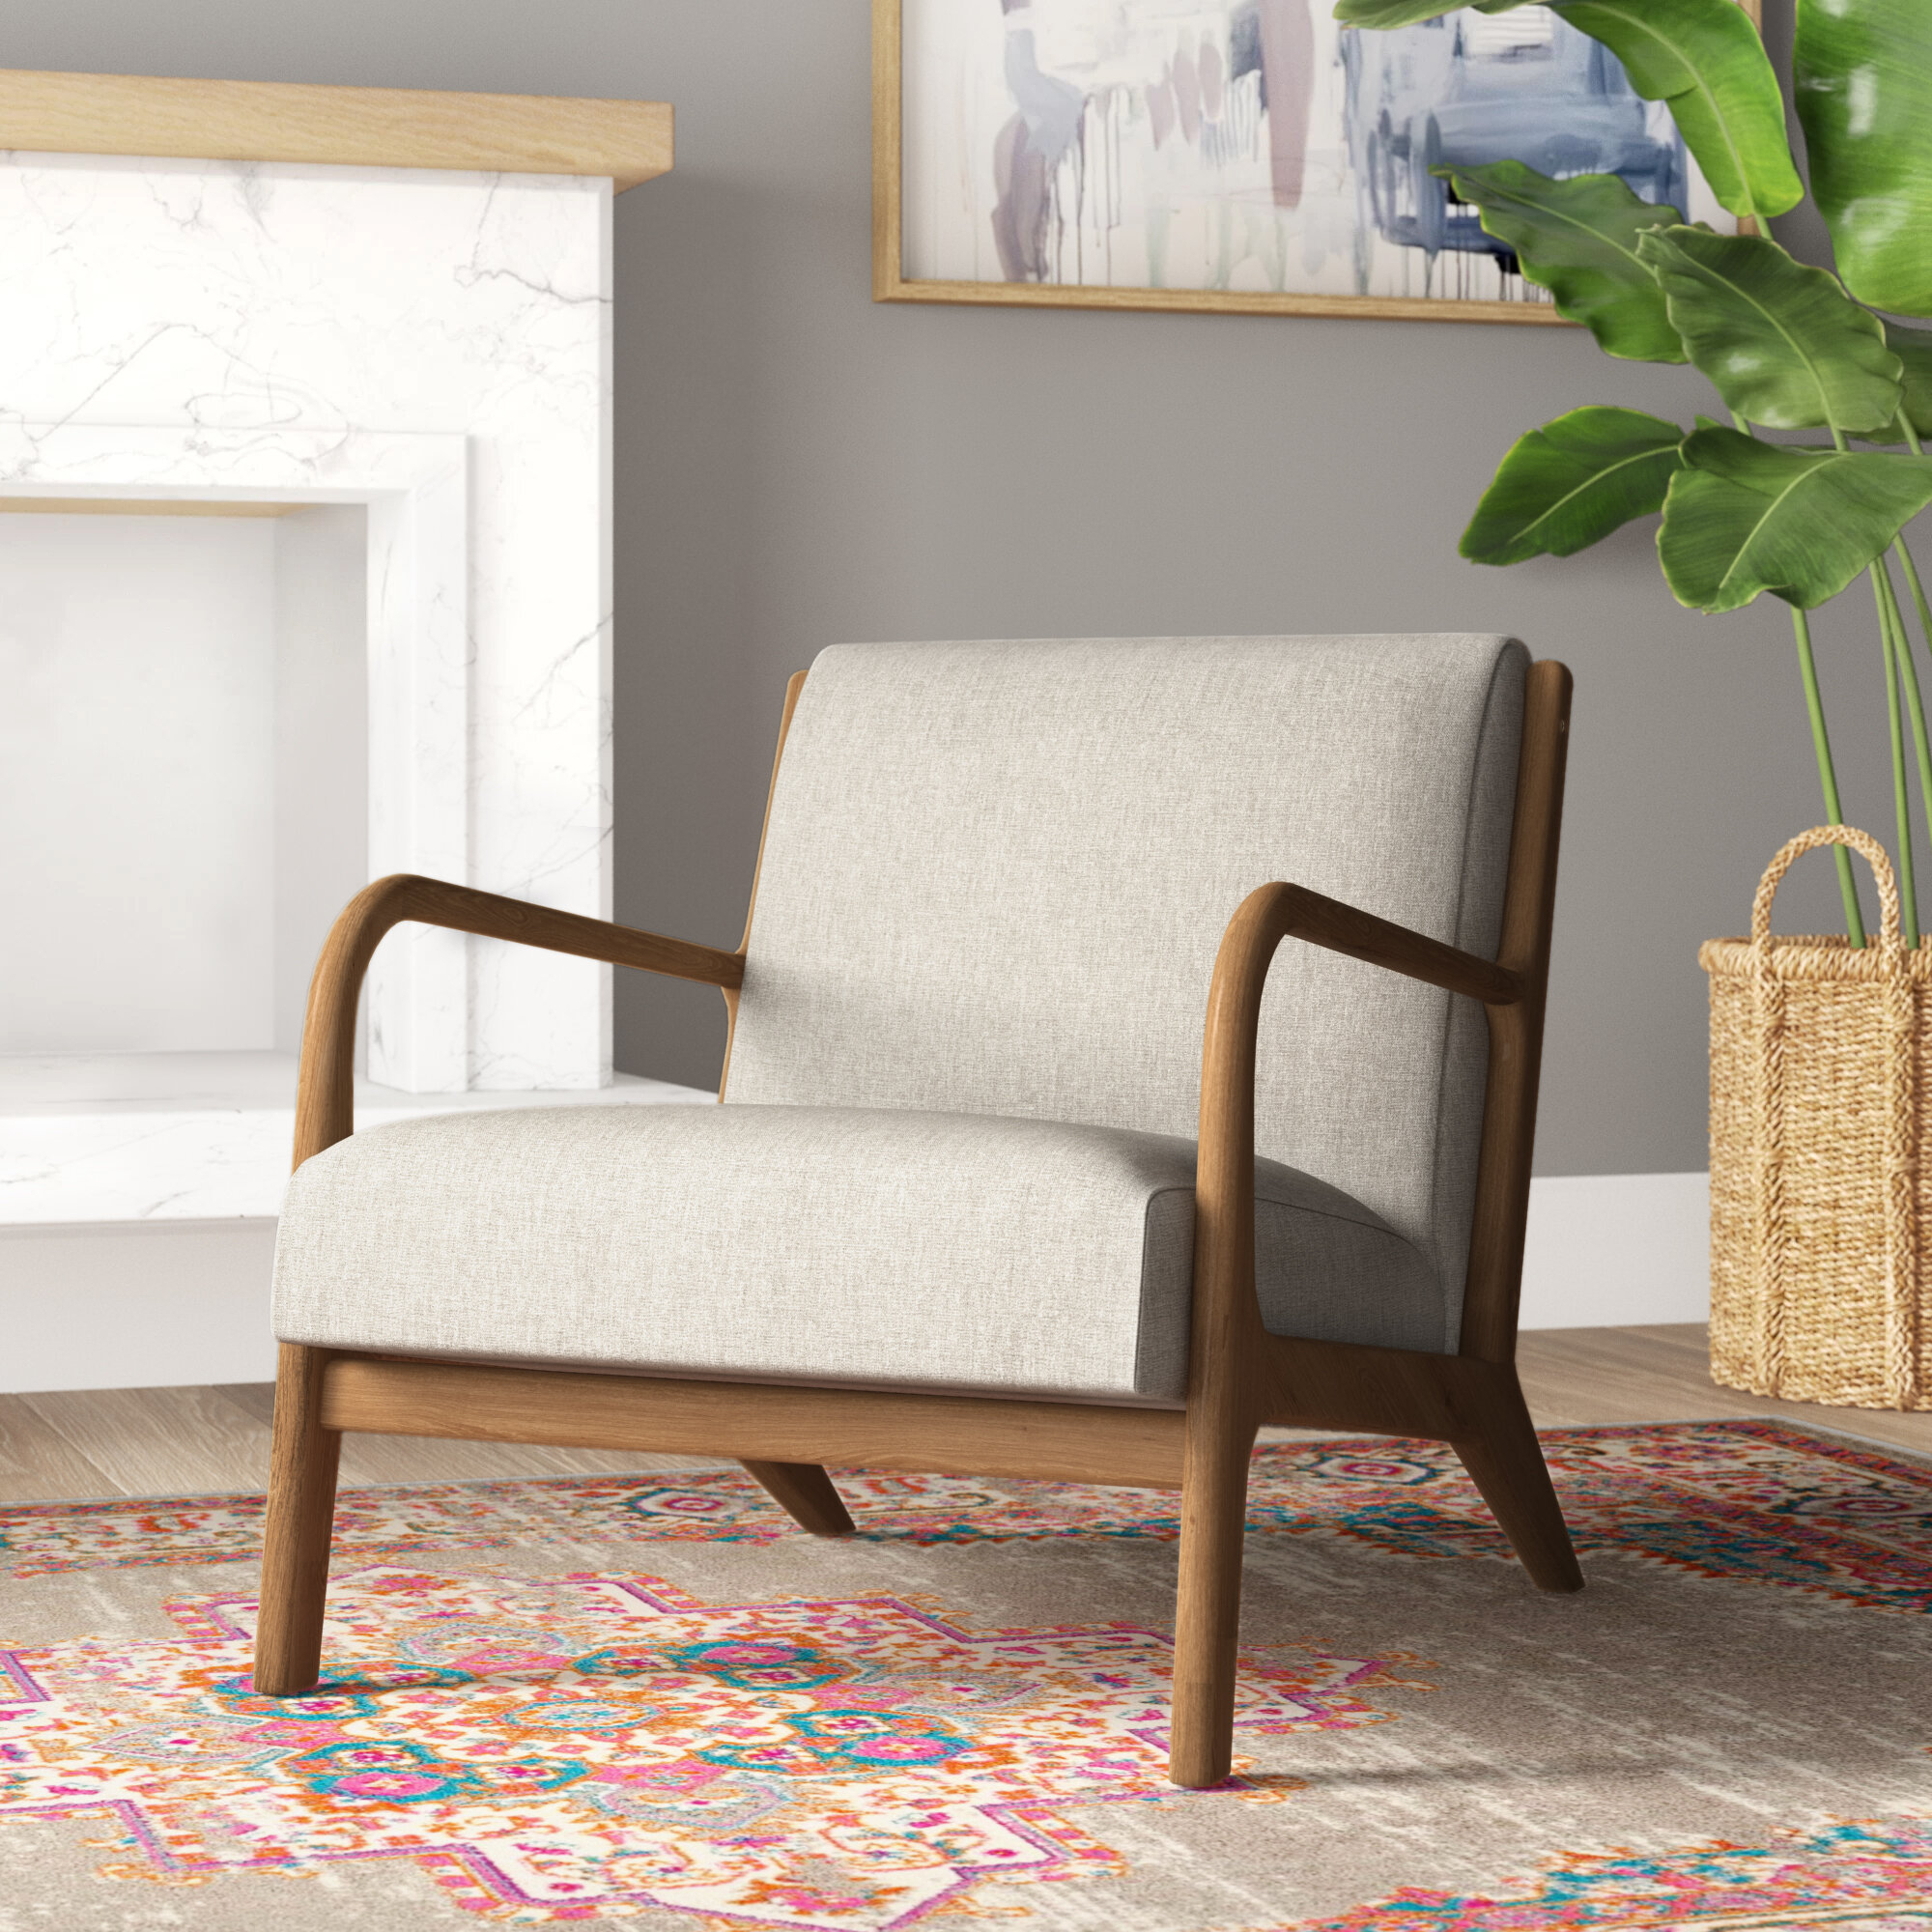 Ashbourne Armchair & Reviews | Joss & Main For Ronaldo Polyester Armchairs (View 15 of 15)